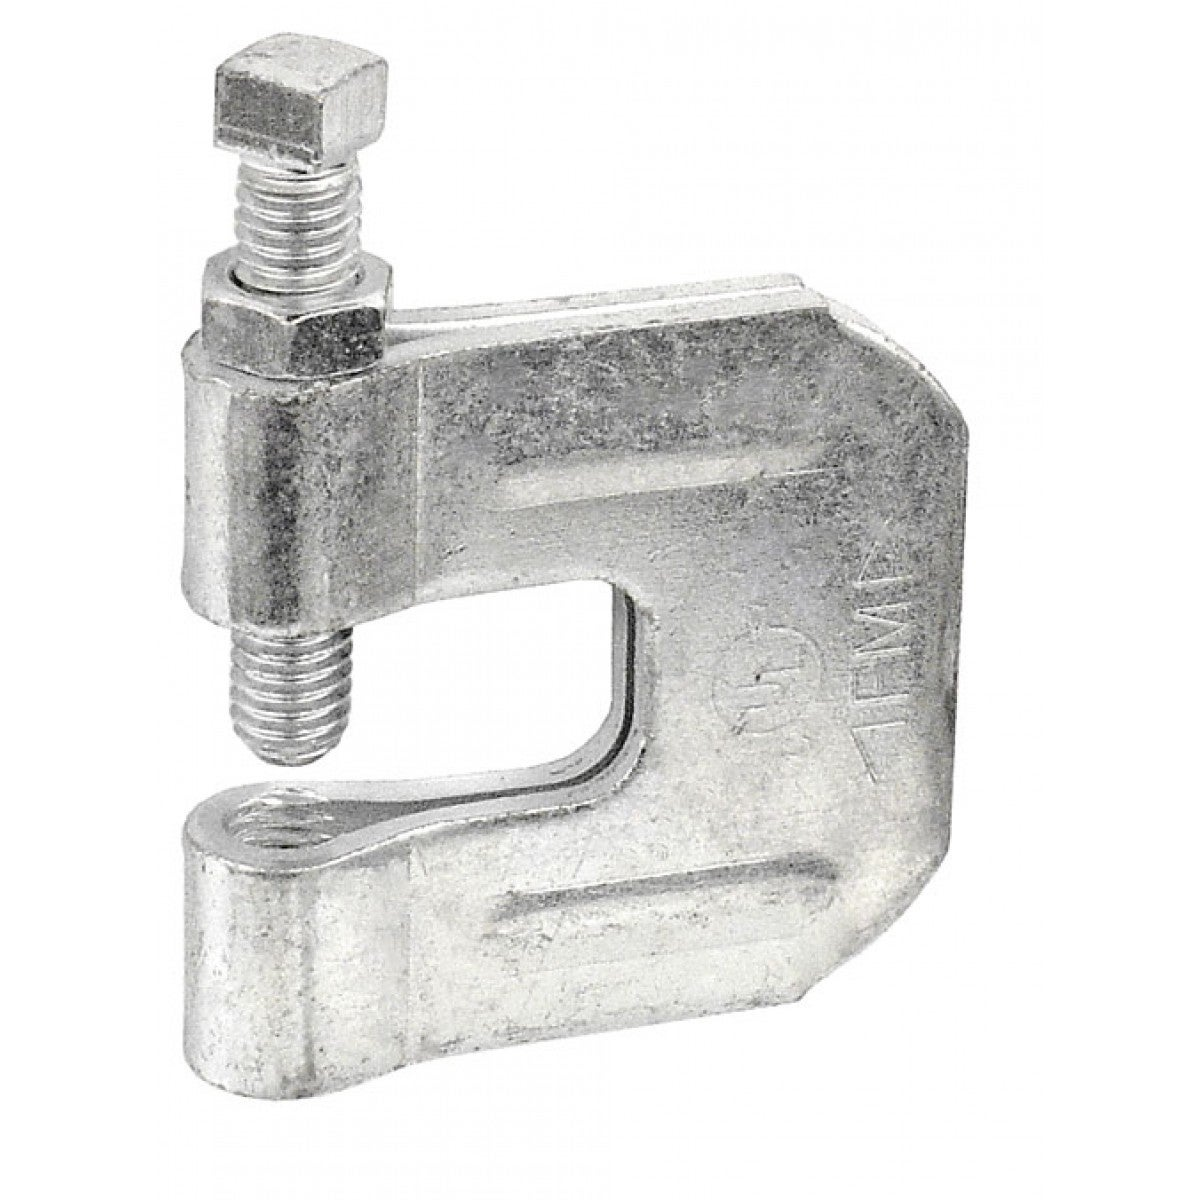 2 Pcs, 3/8-16 C Style Steel Beam Clamp for Vertical Loads, Galvanized Steel